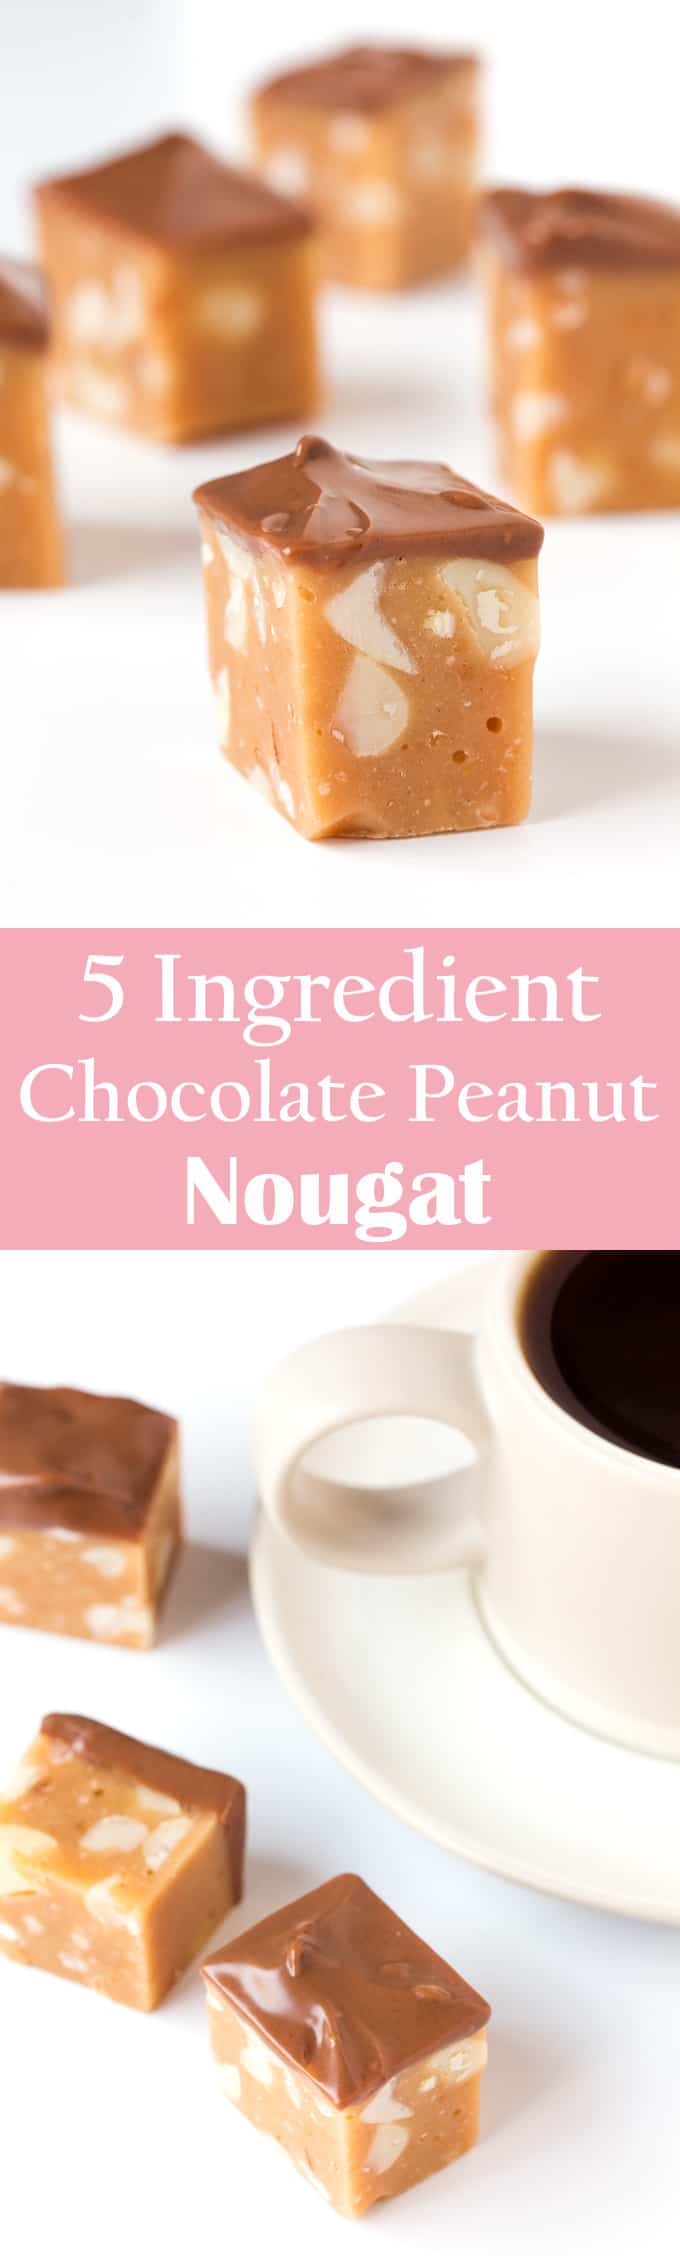 5-Ingredient chocolate Peanut Nougat - no baking, whisking or thermometers needed. Just melt, mix, cool, cut and dip. Sweet, chewy and delicious!